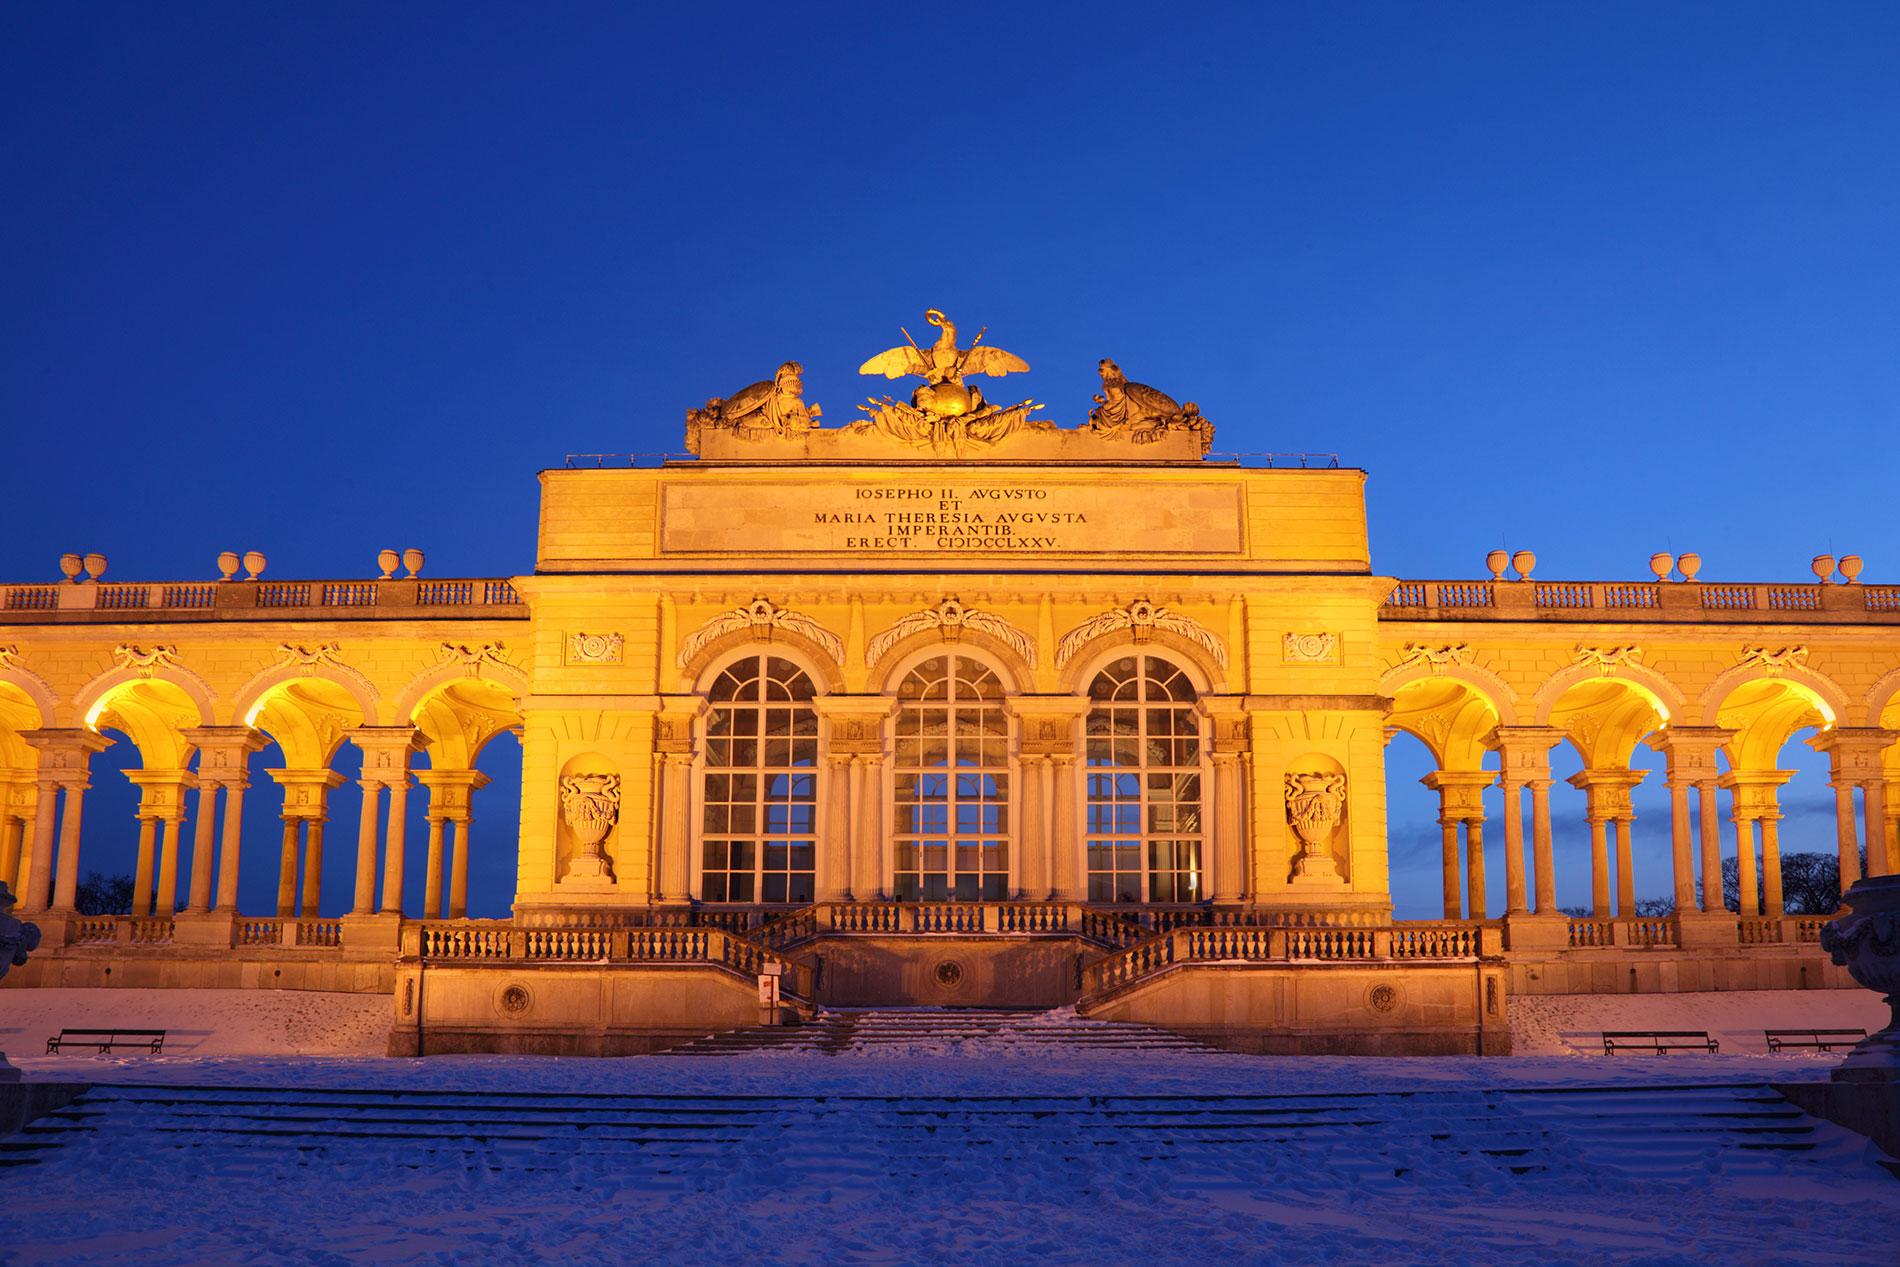 Schönbrunn Palace in Vienna at night